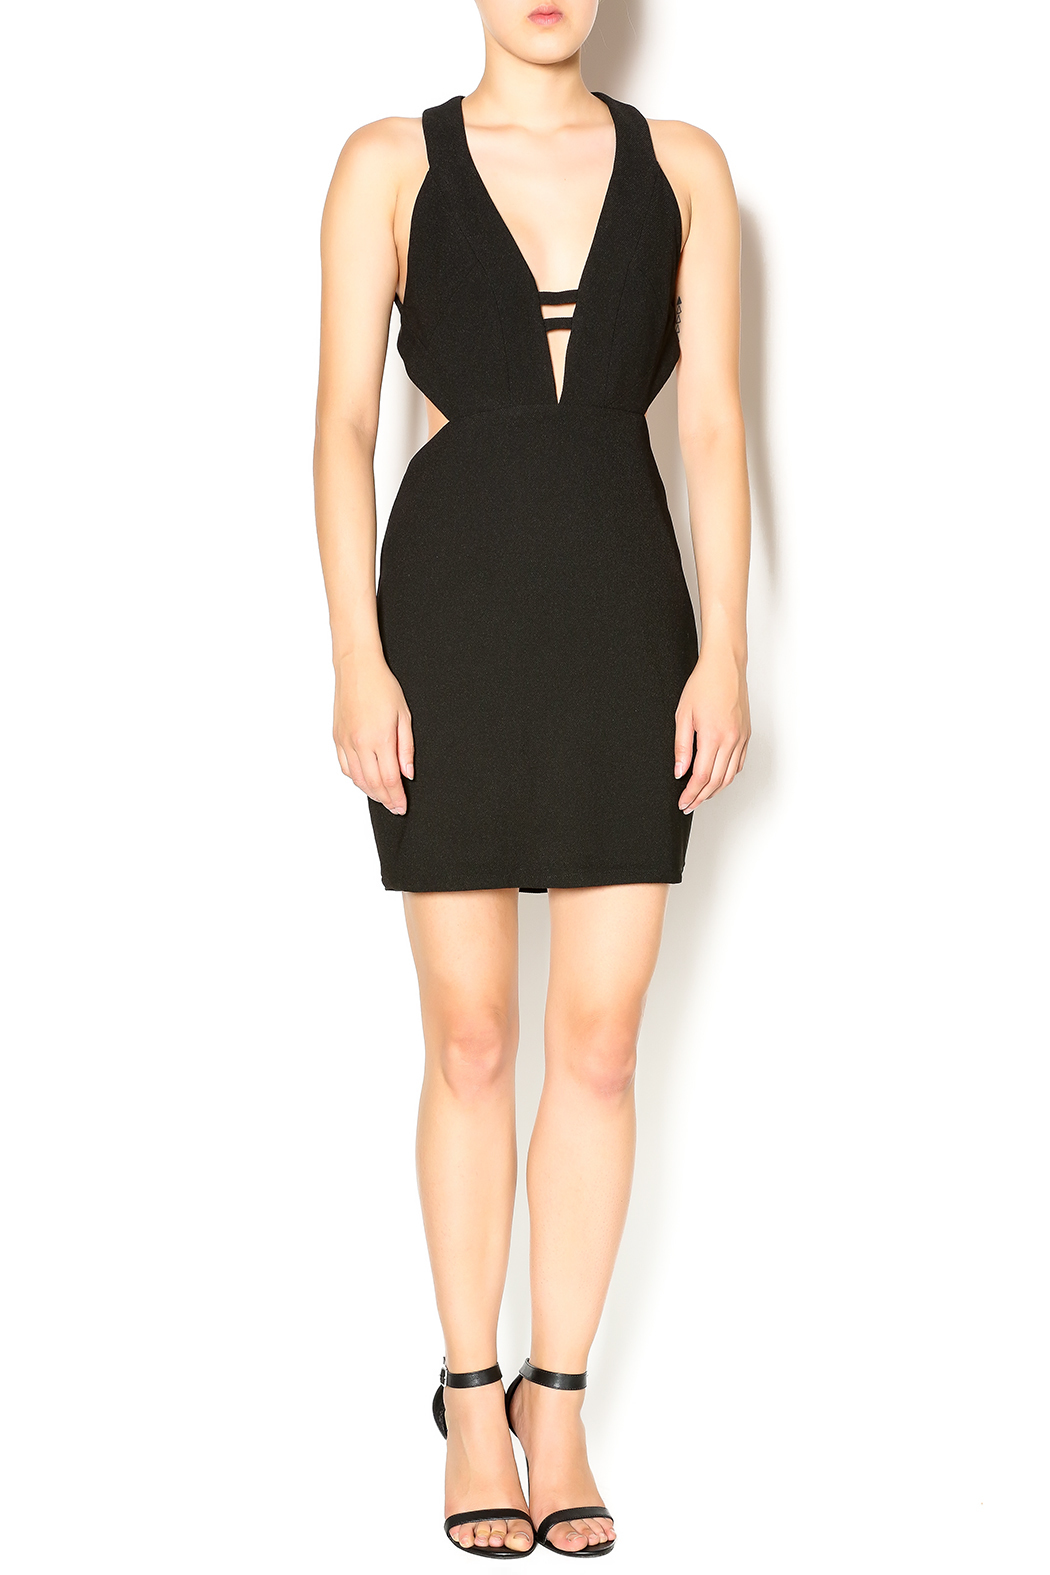 York city new buy bodycon dresses websites boutiques near